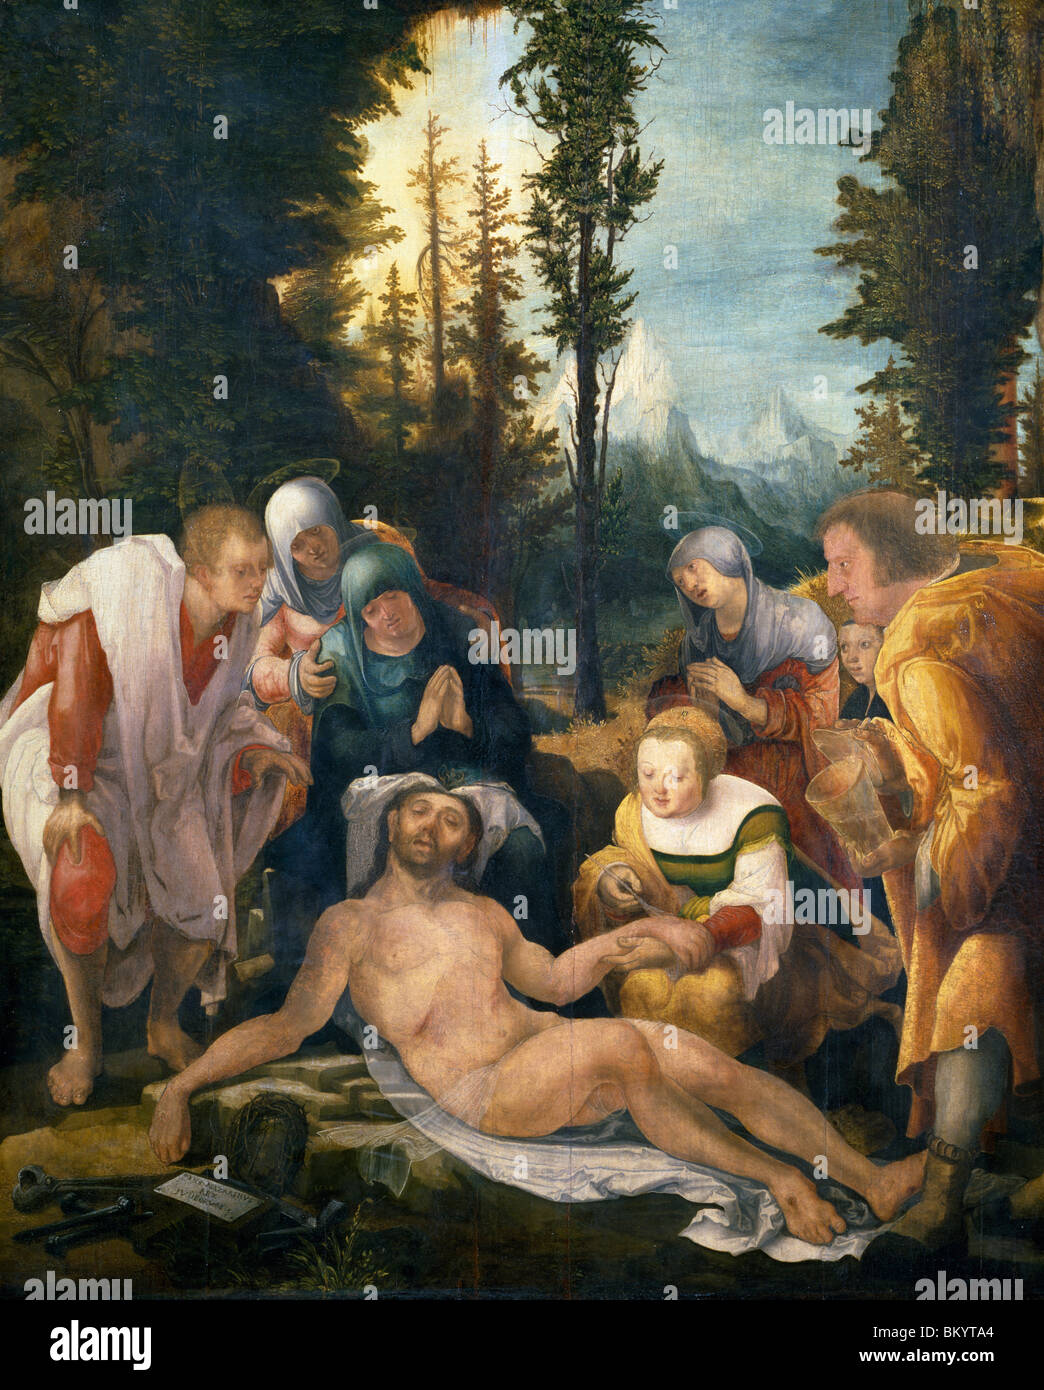 The Lamentation of Christ by Wolfgang Huber,  1524,  (Circa 1490-1553),  France,  Paris,  Musee du Louvre - Stock Image